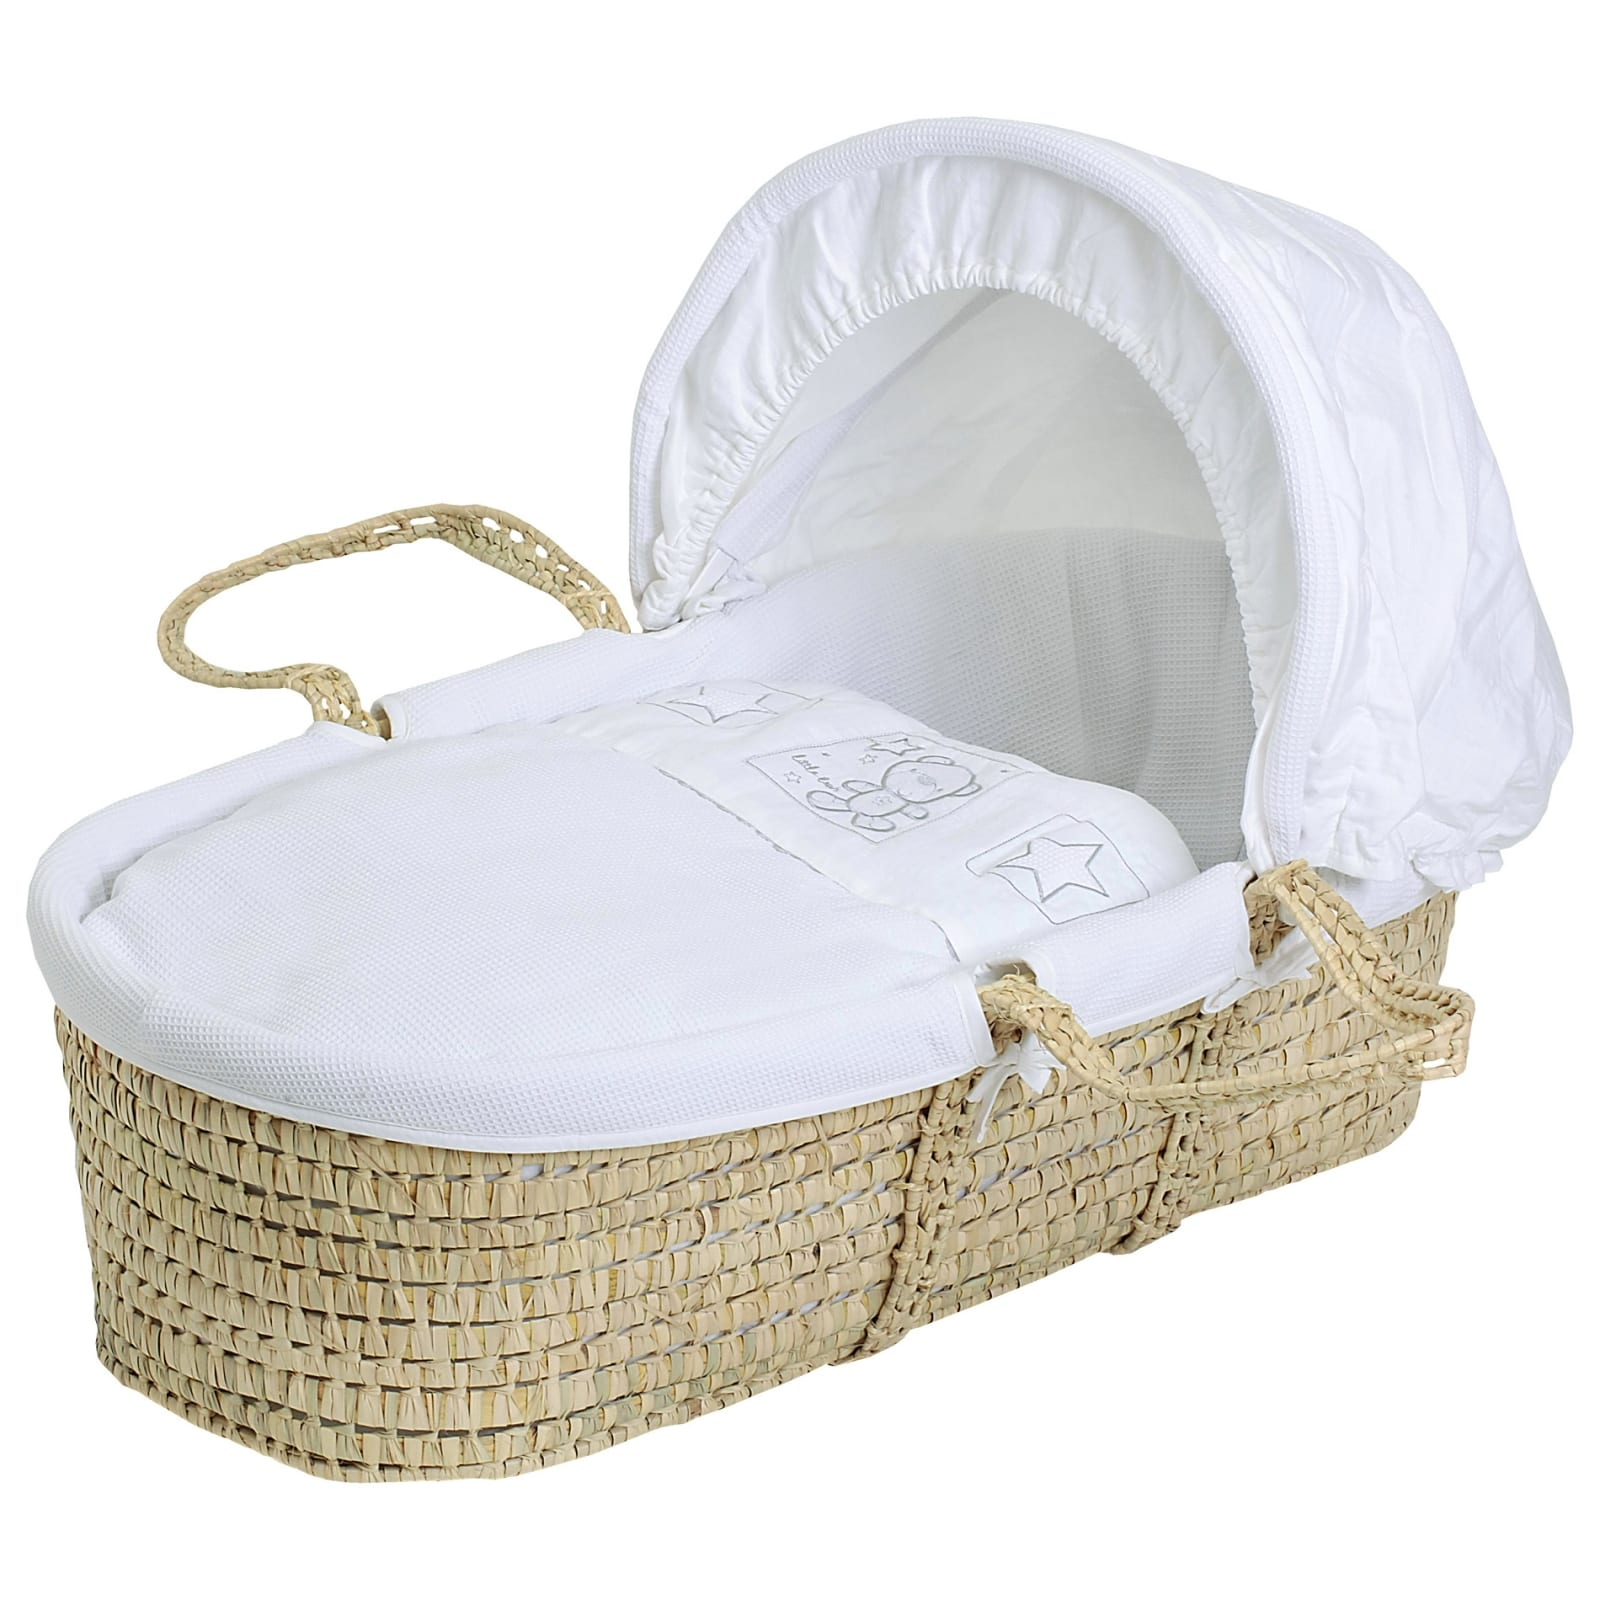 Star Ted Moses Basket – Palm – White product image